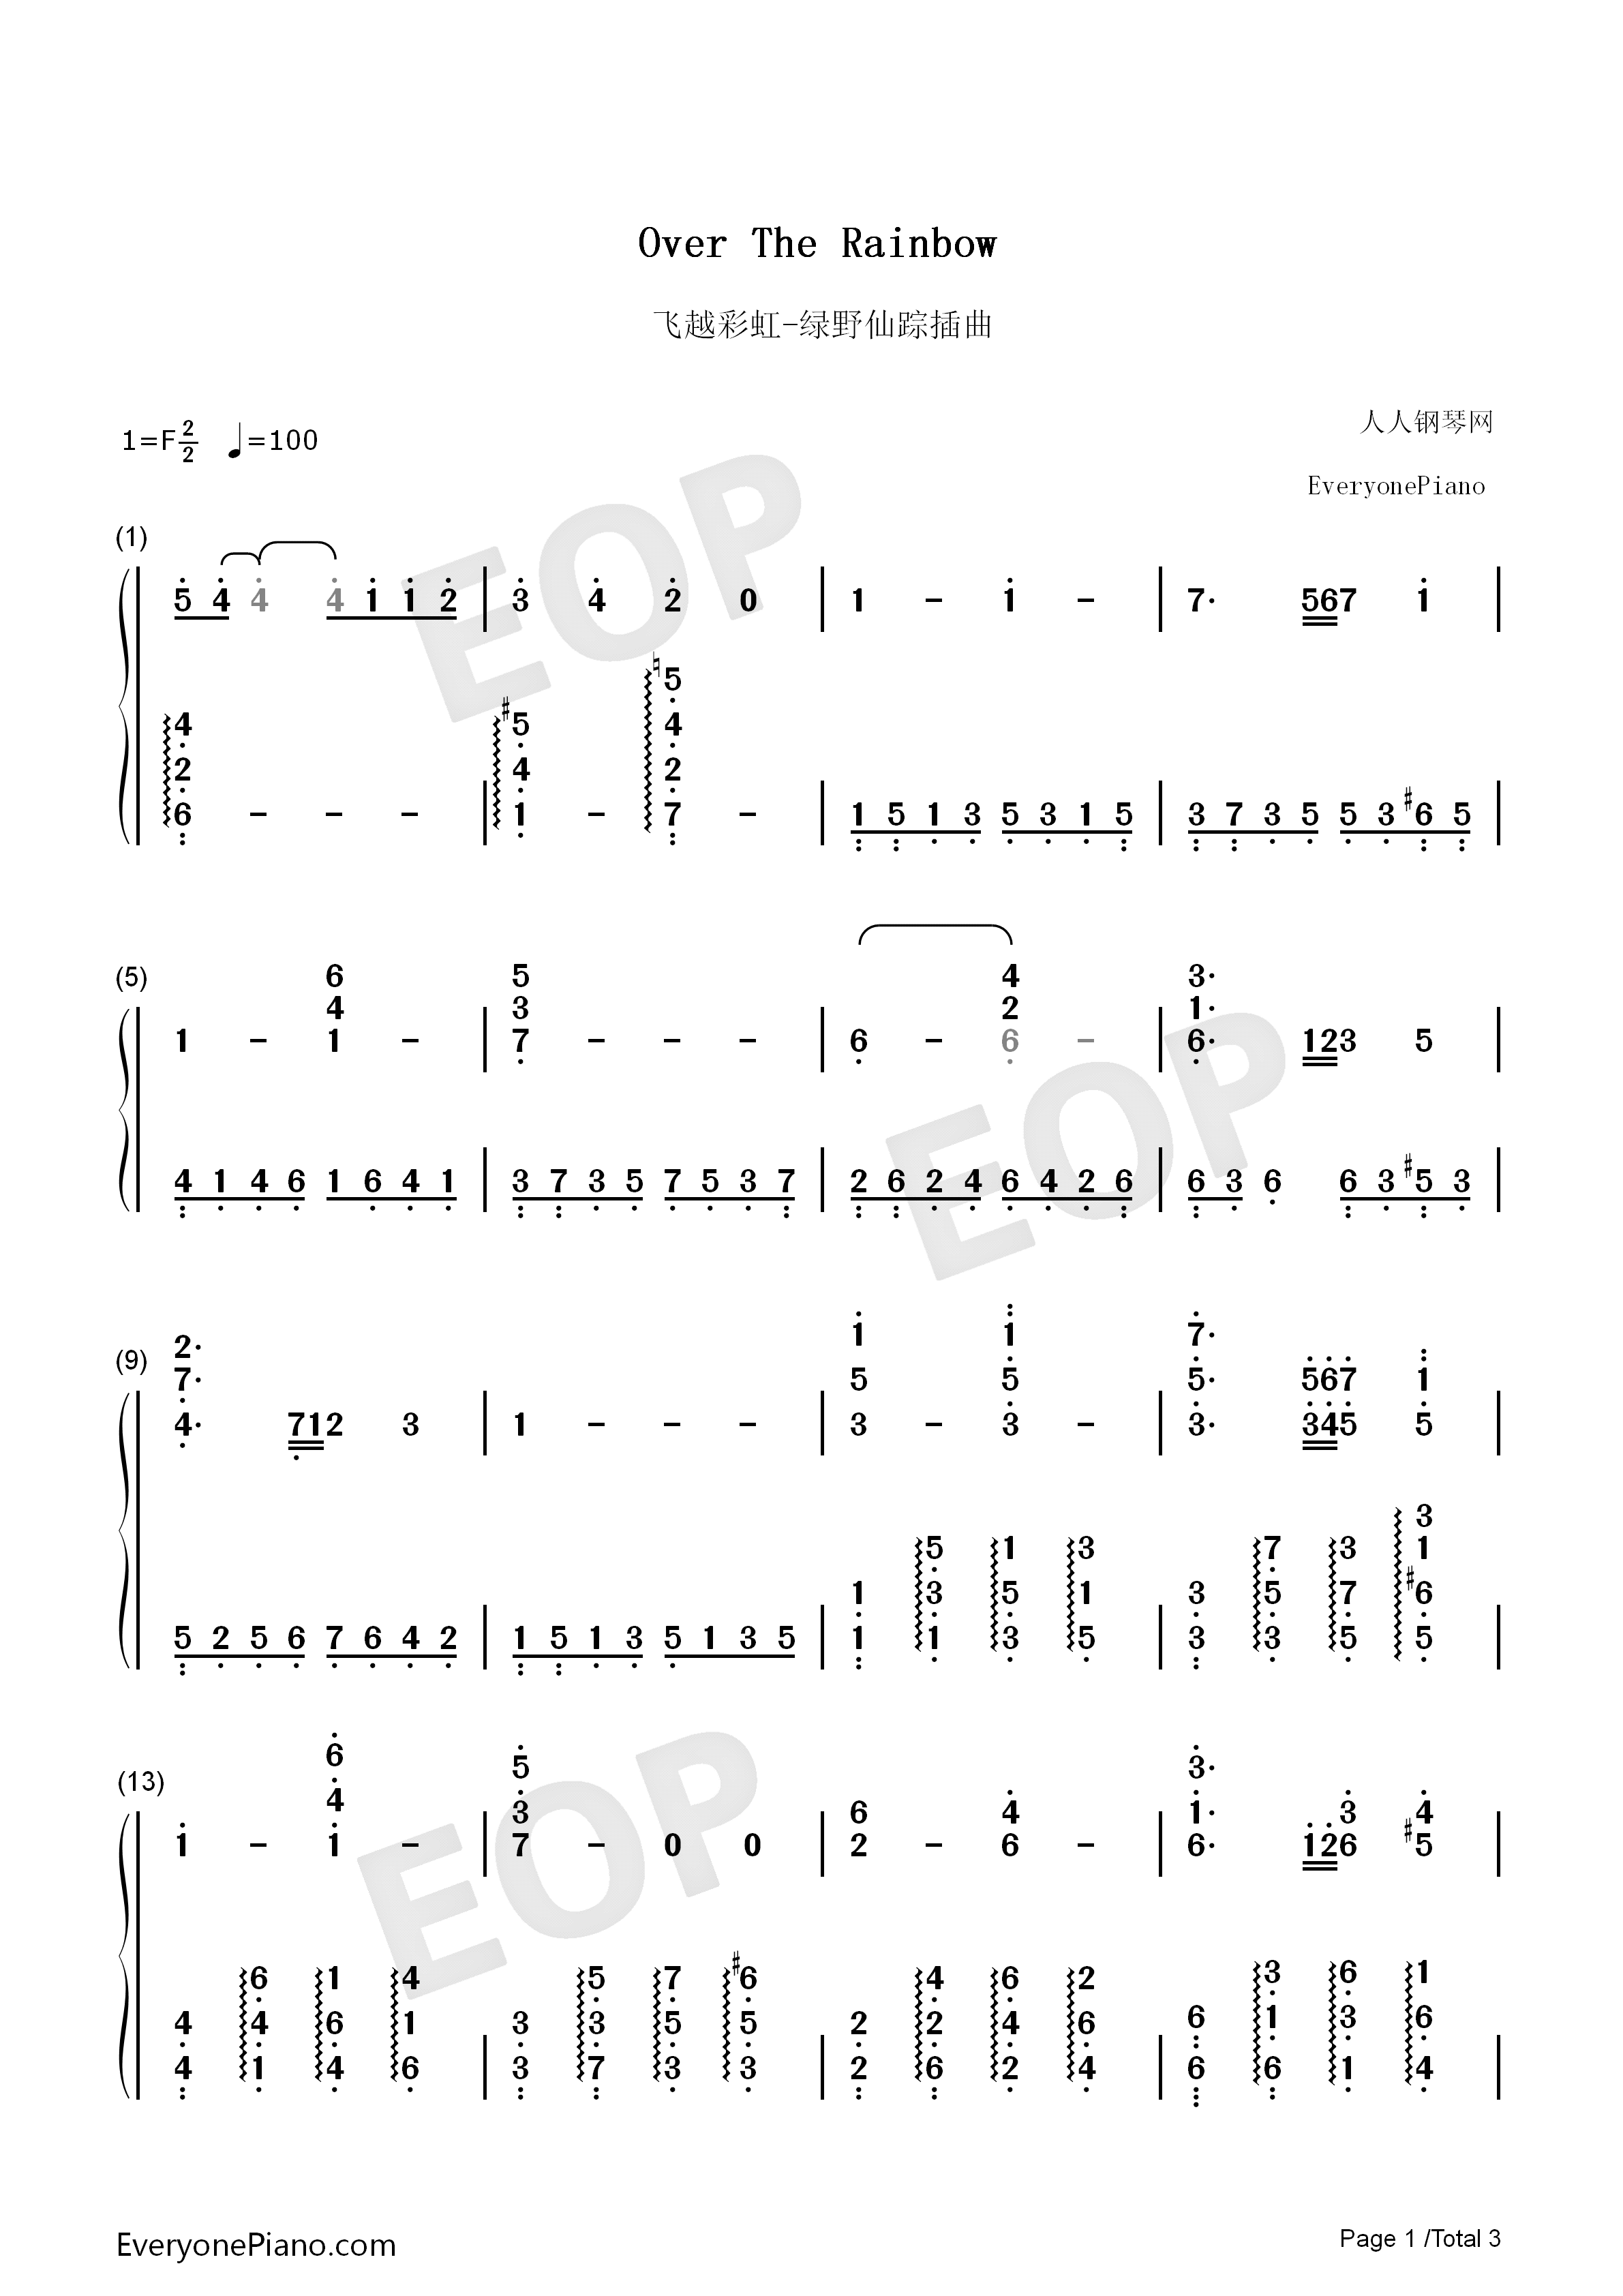 Over the rainbow the wizard of oz ost numbered musical notation listen now print sheet over the rainbow the wizard of oz ost numbered musical notation preview 1 hexwebz Gallery